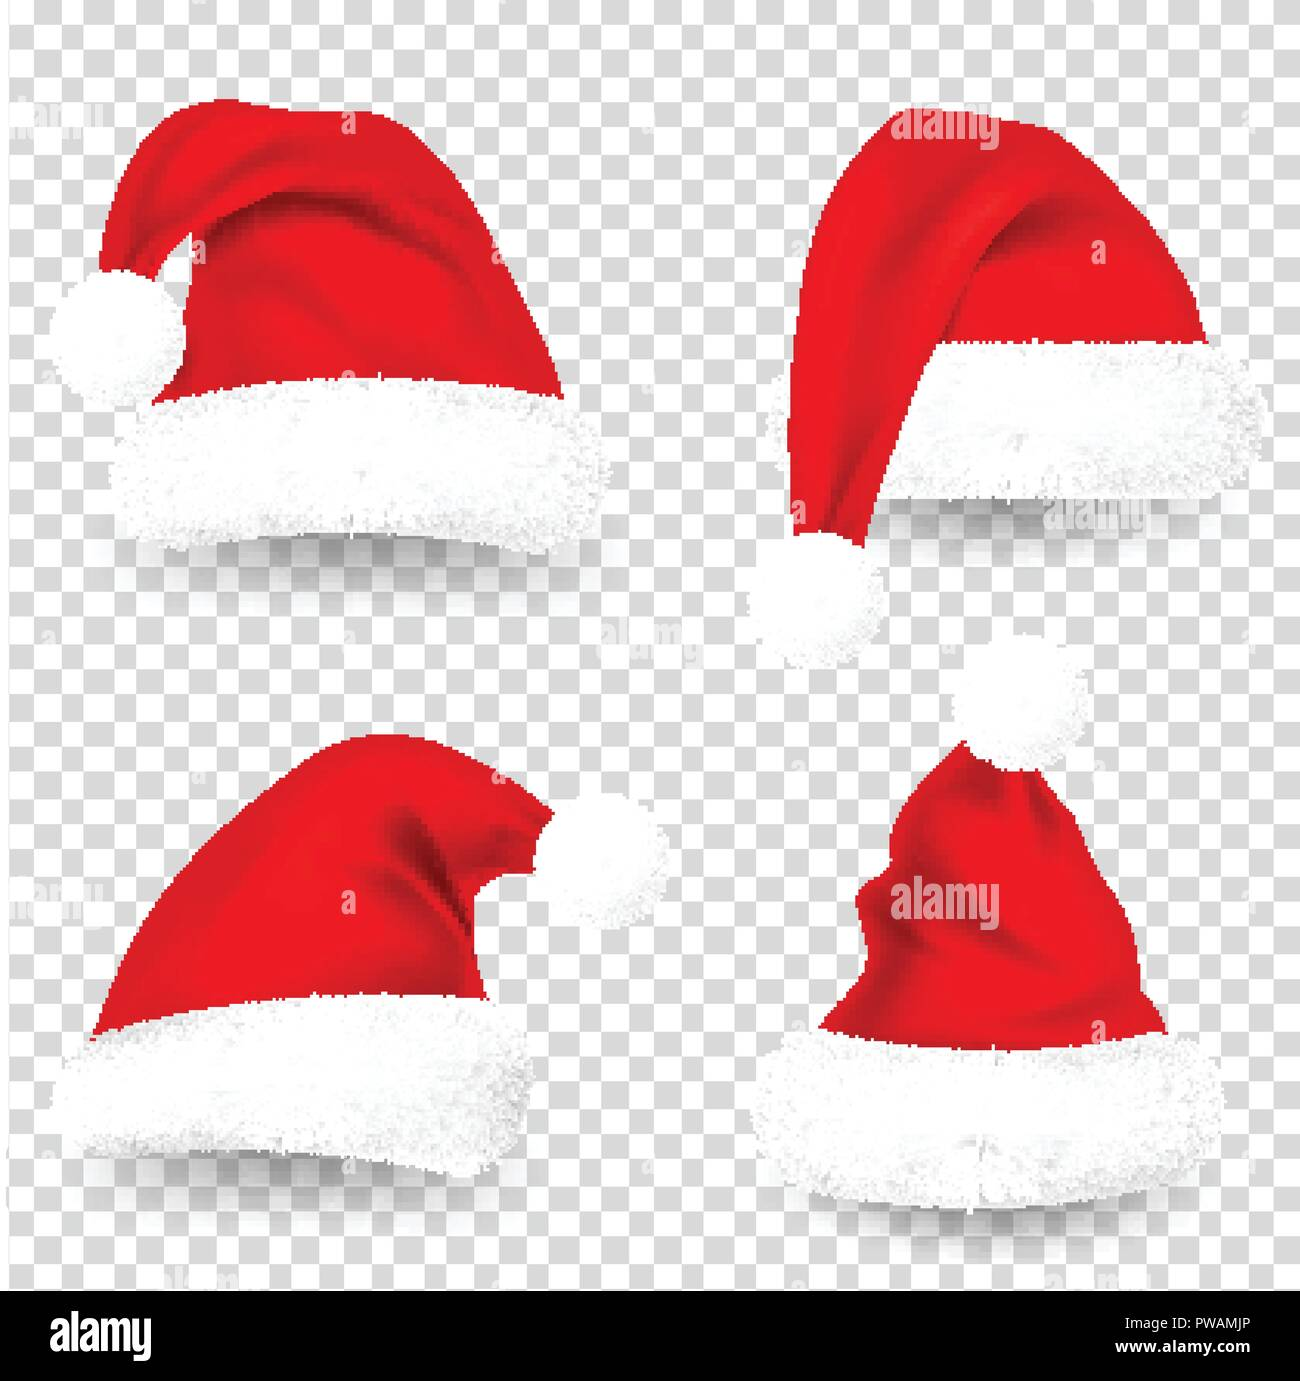 christmas santa claus hats with fur and shadow set new year red hat isolated on transparent background winter cap vector illustration